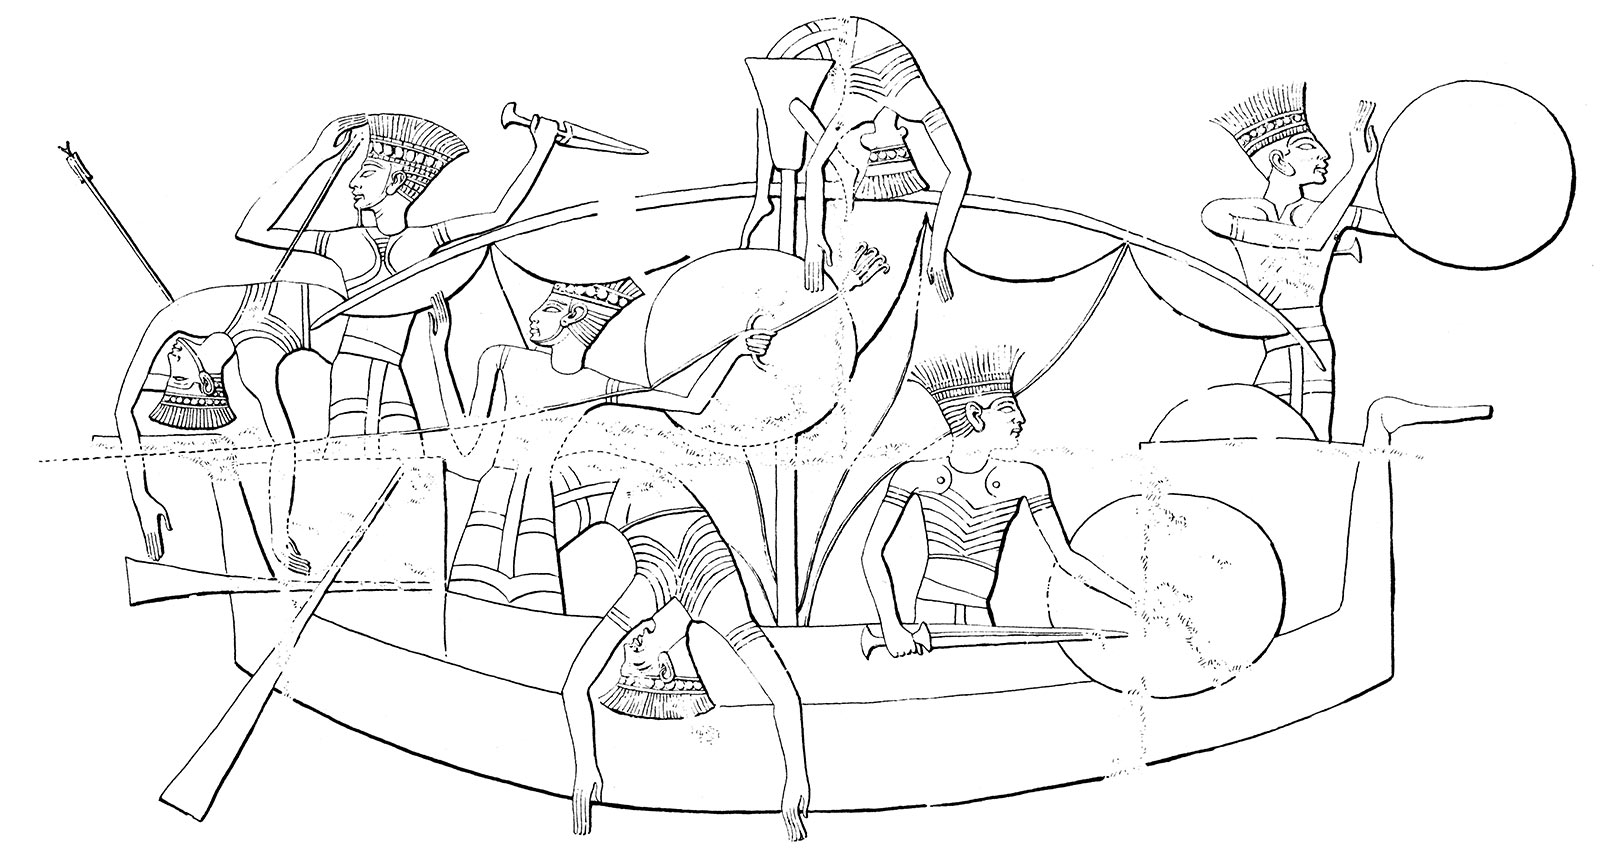 A line drawing of ancient Egyptians in a boat. Soldiers hold weapons and shields, some dead or injured.